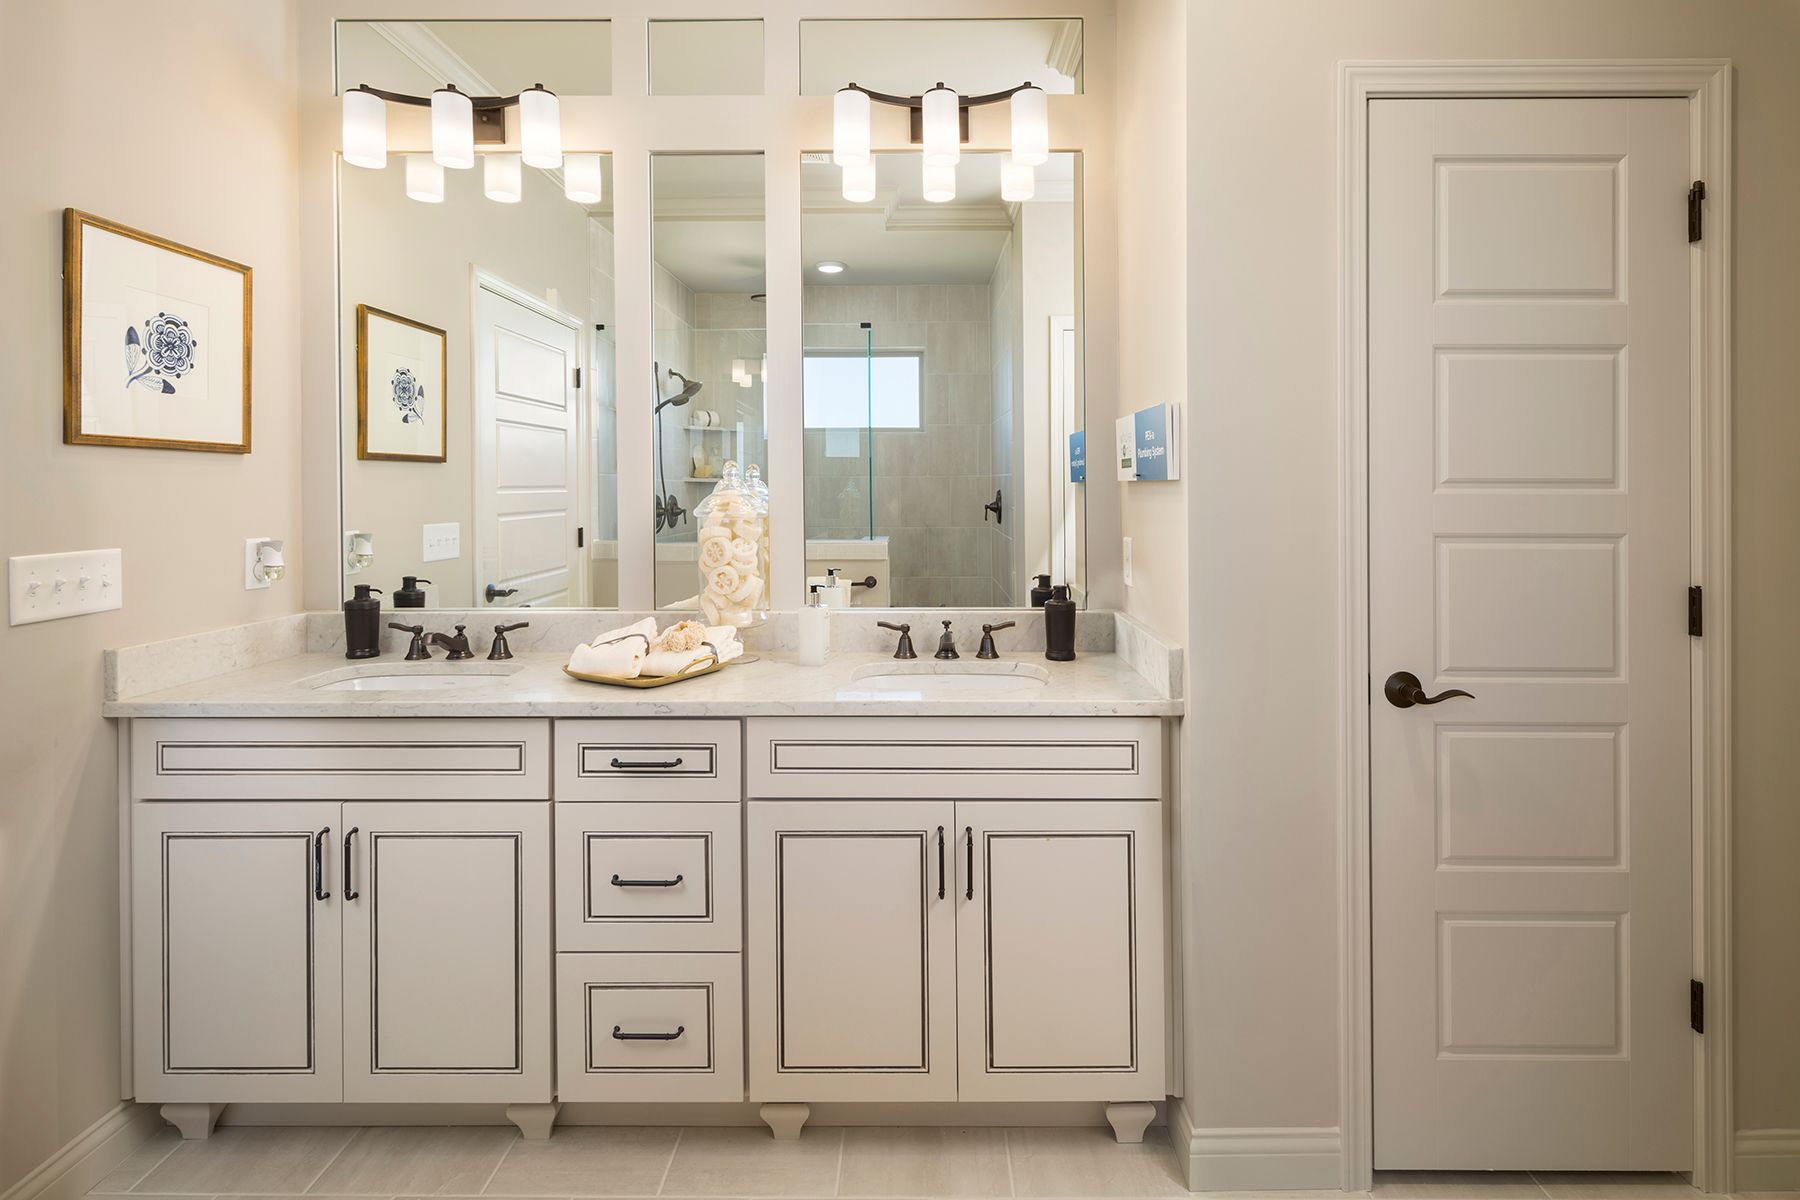 Bathroom featured in the Serenity By M/I Homes in Cincinnati, OH